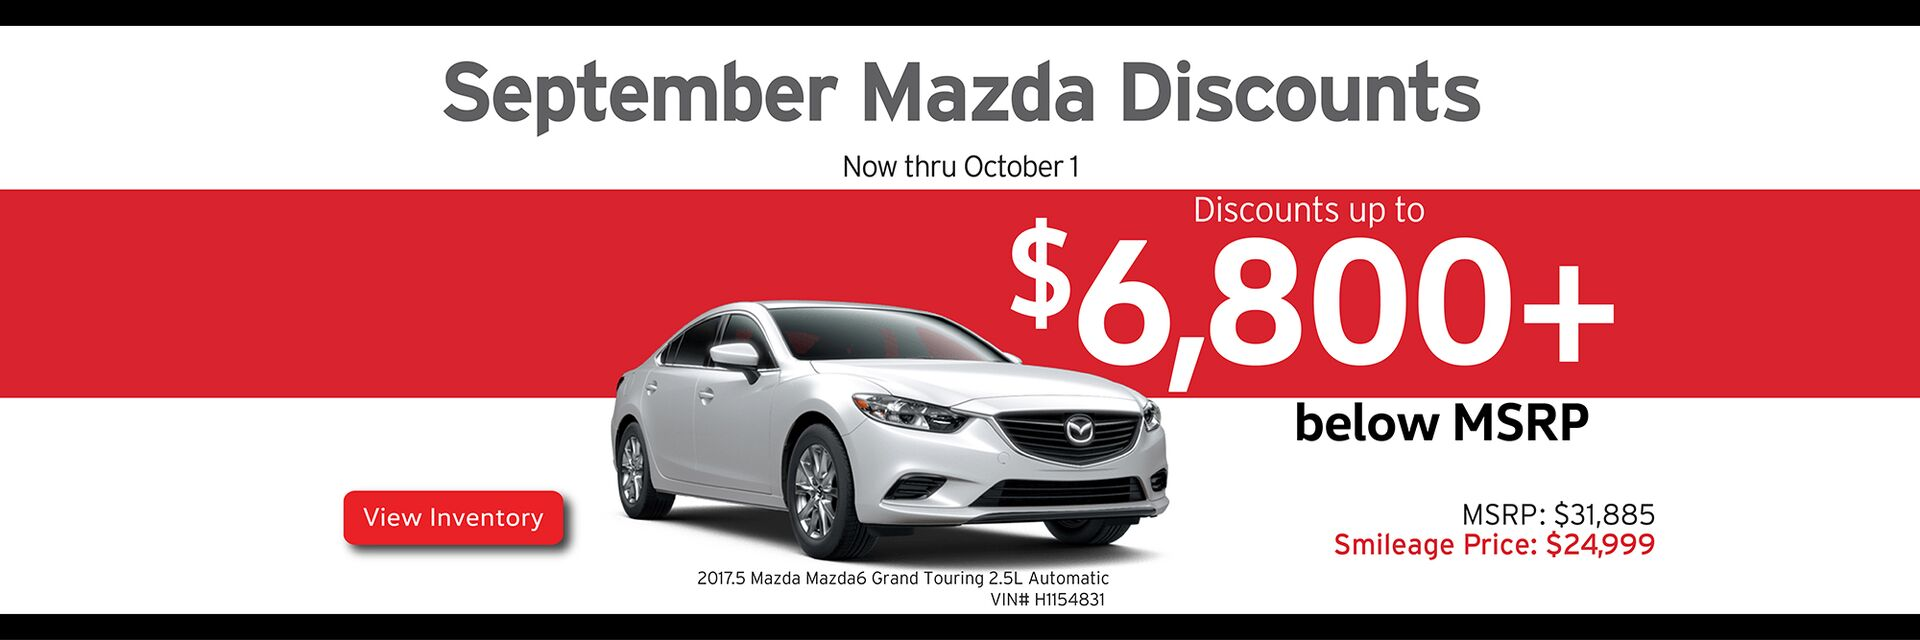 Capistrano Mazda September discounts - Save up to $6,800+ below MSRP